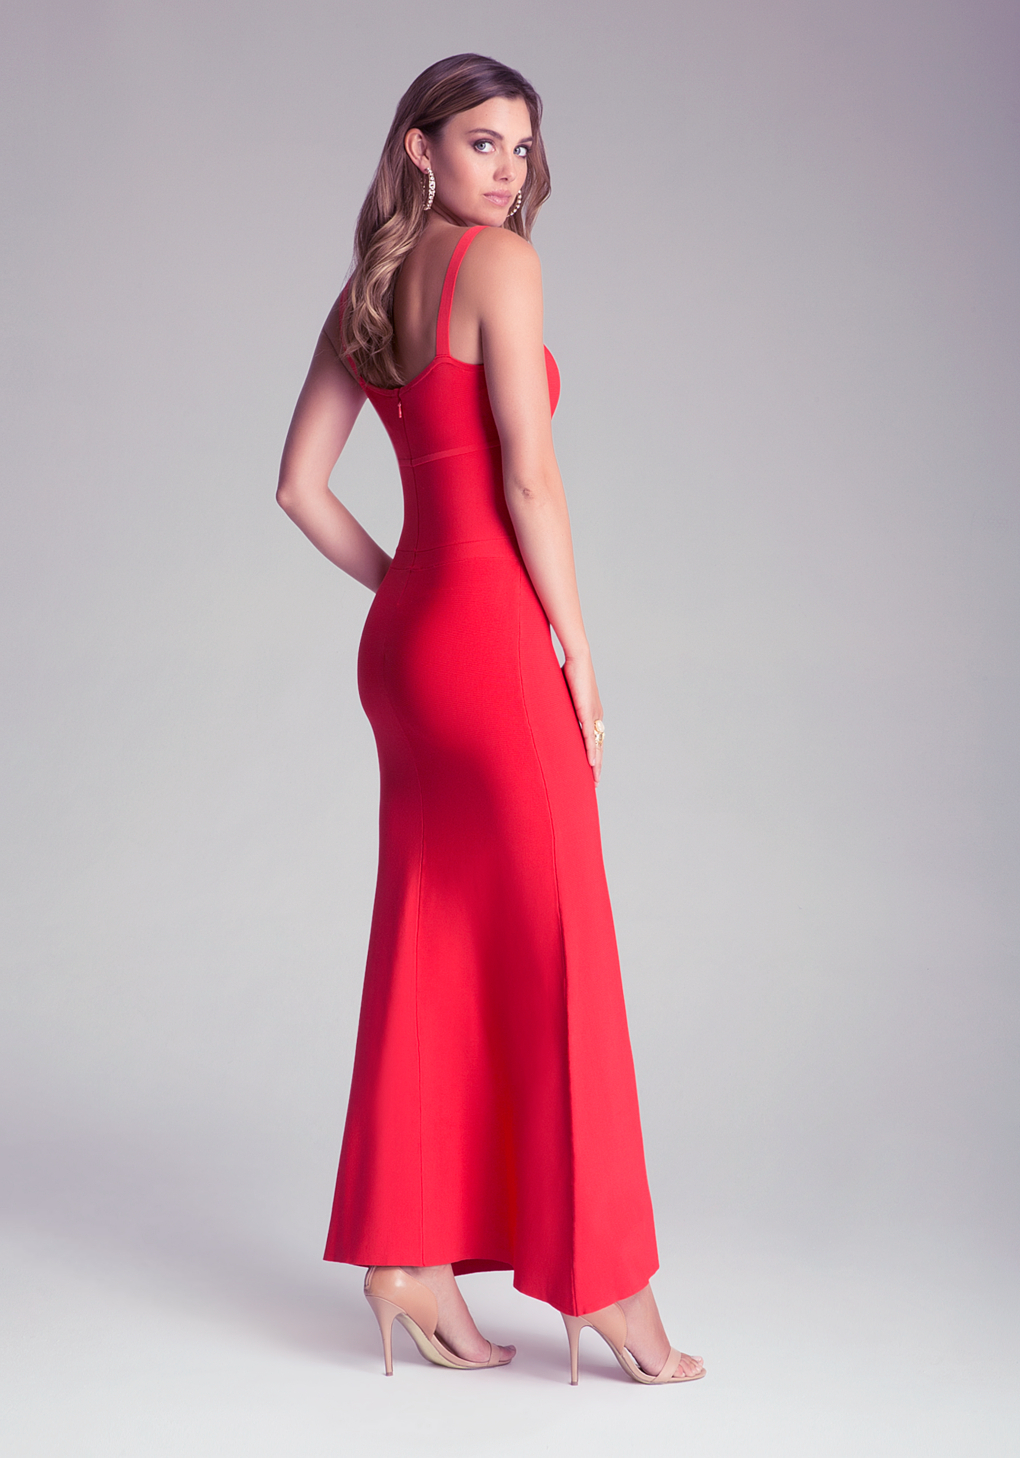 Bebe Bodycon Maxi Dress in Red | Lyst